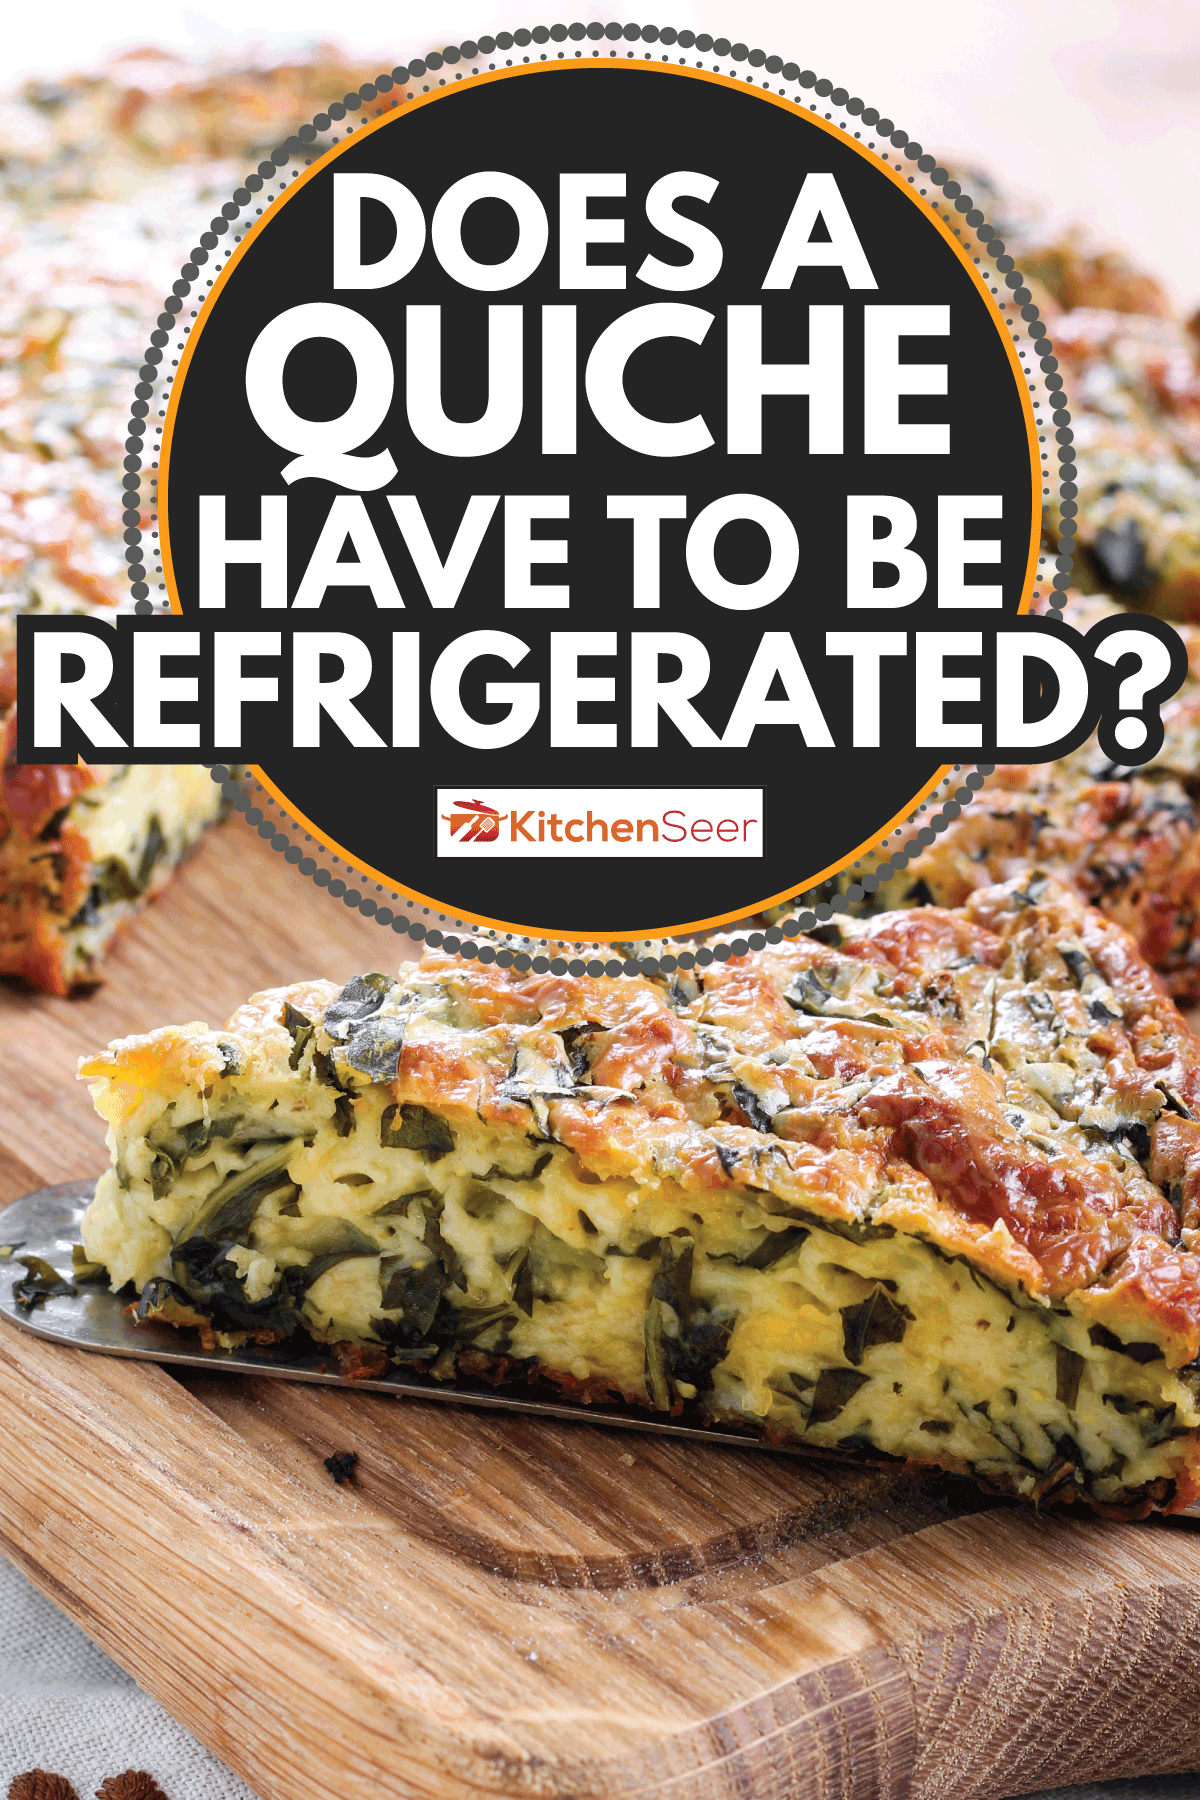 green quiche sliced and placed on a serving spoon, Does A Quiche Have To Be Refrigerated